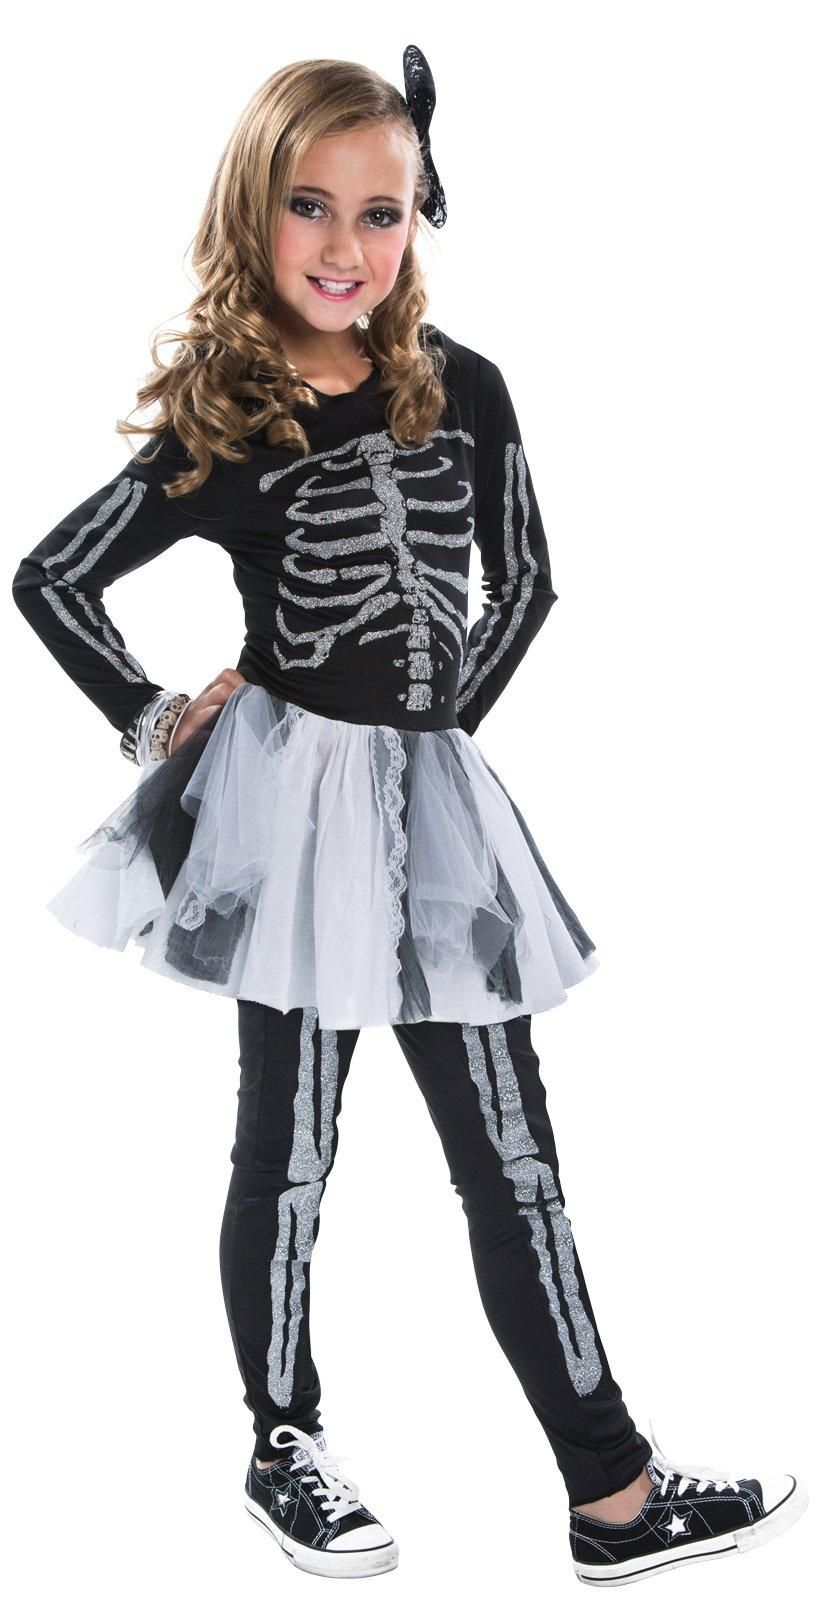 27a803d0b09f6 Totally Skelebones Child Costume | Costumes | Halloween costumes ...